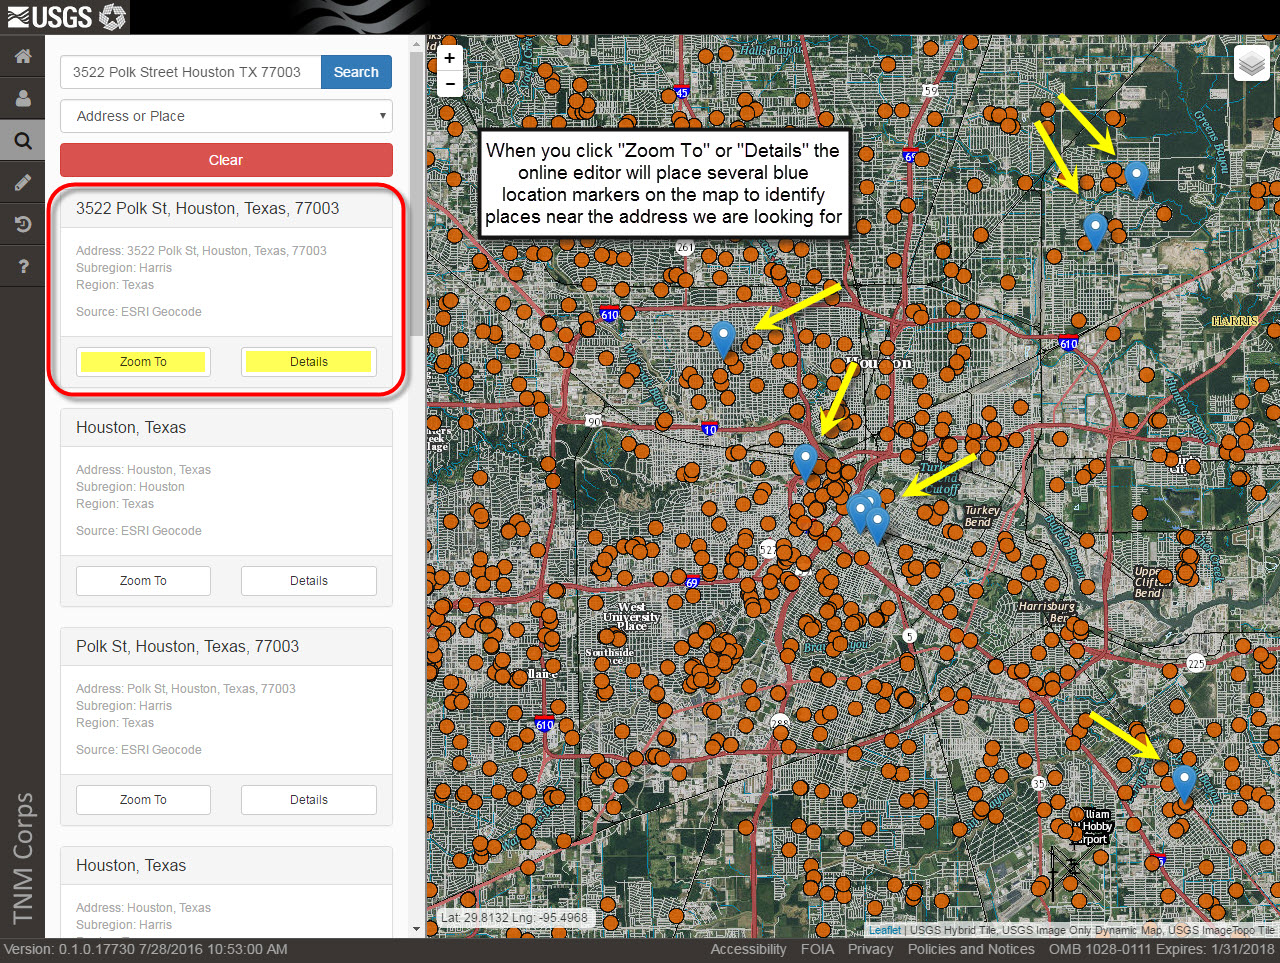 2a_search_for_the_feature_using_the_online_editor Zoomed In Houston Tx Map on houston zip code map, city of conroe tx map, texas interactive radar weather map, houston metro bus map, houston neighborhood map, houston streetcar district map, houston city road map, katy tx map, houston texas map, kingwood texas map, prairie view tx map,